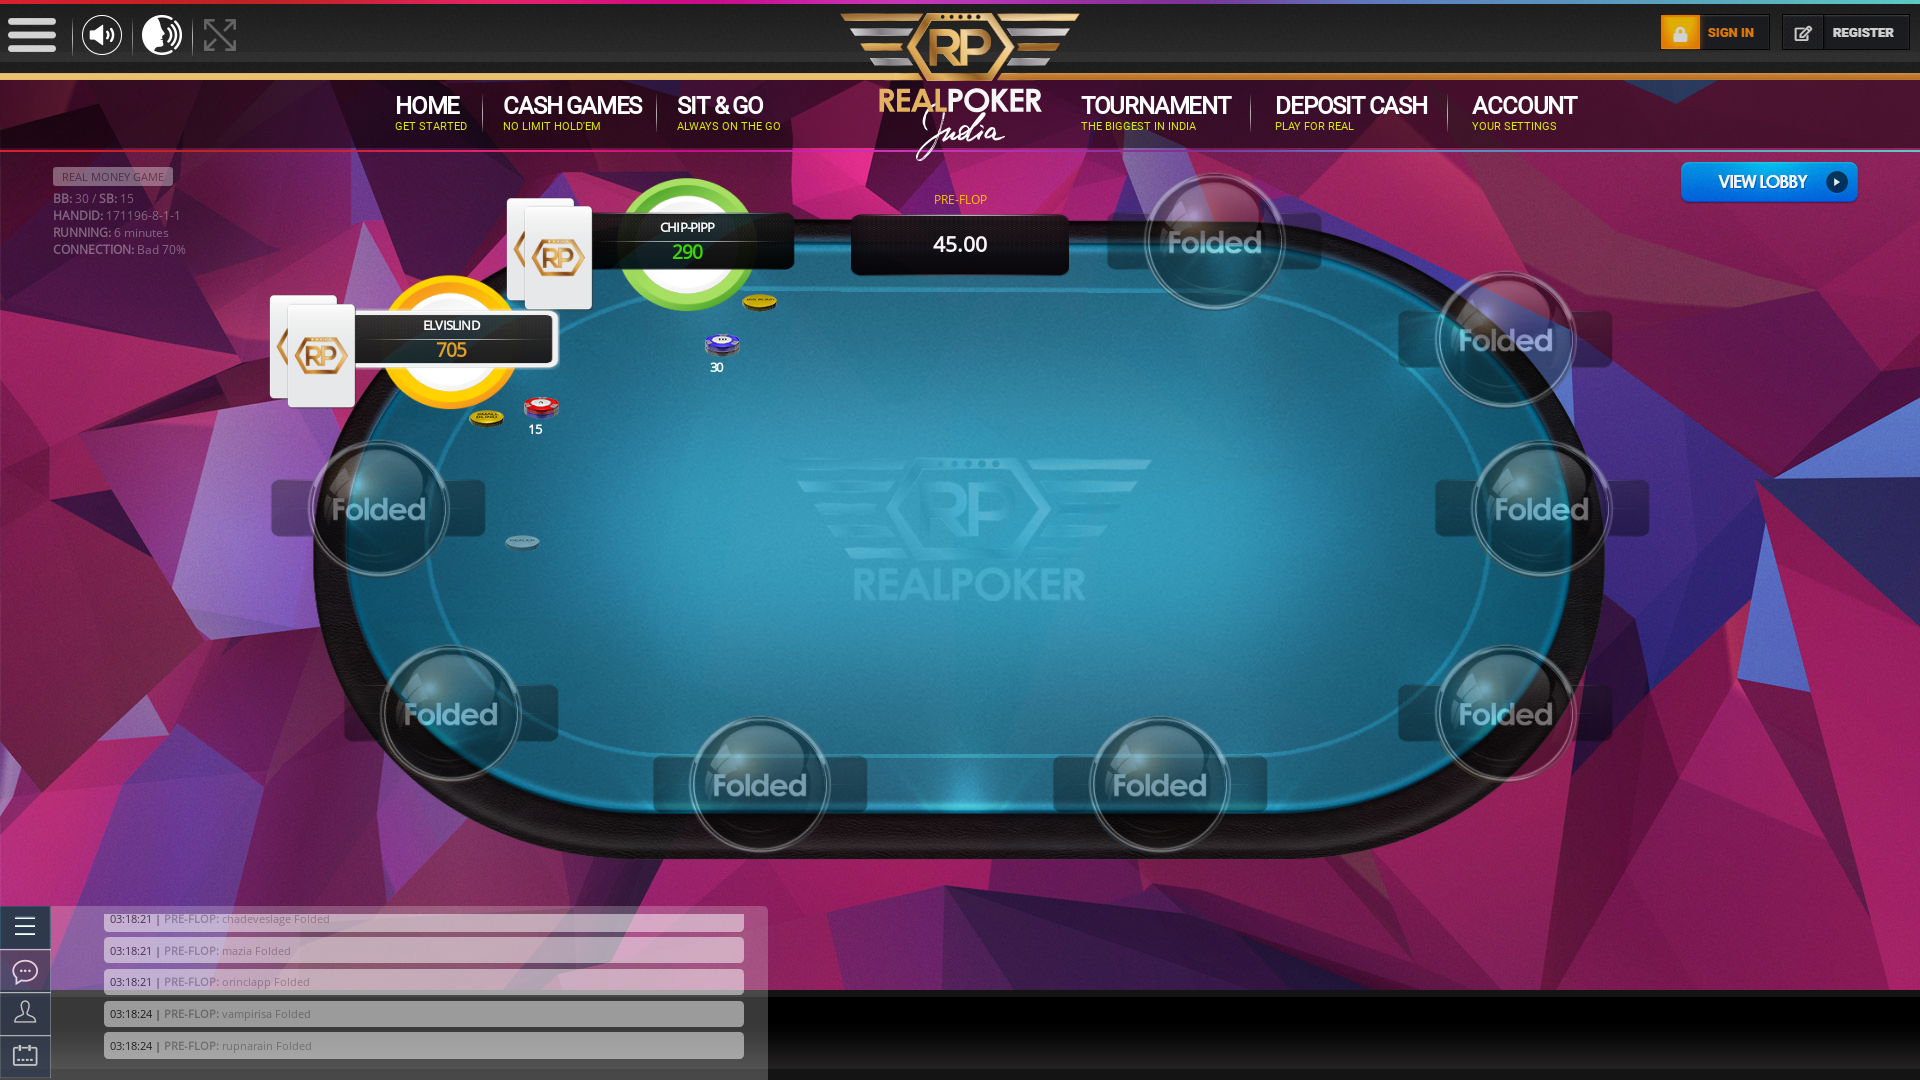 Online poker on a 10 player table in the 6th minute match up